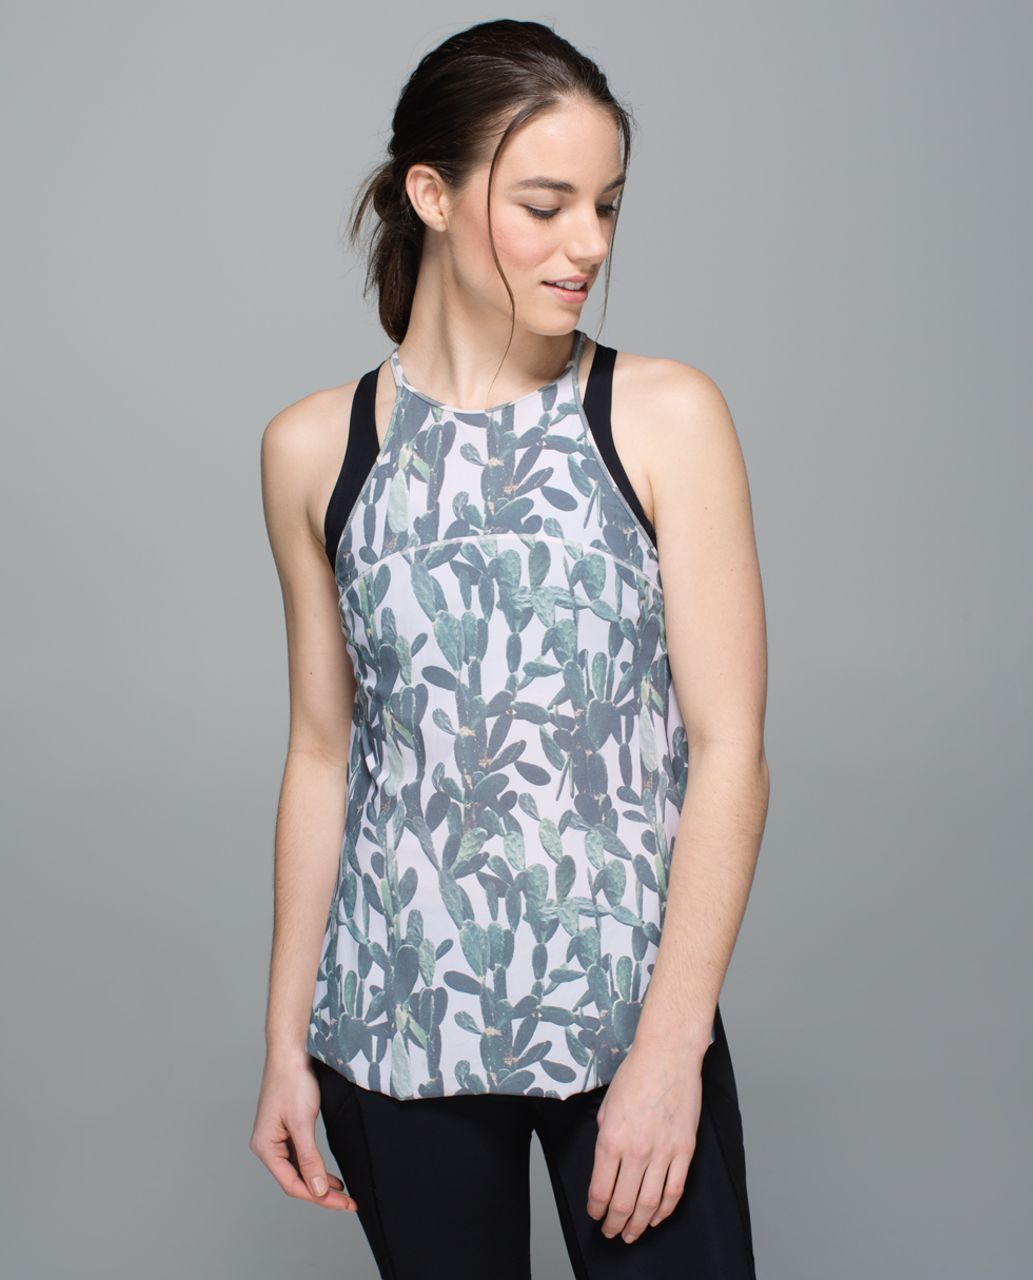 Lululemon Water:  Sea-Me Run Singlet - Mini Prickly Pear Multi